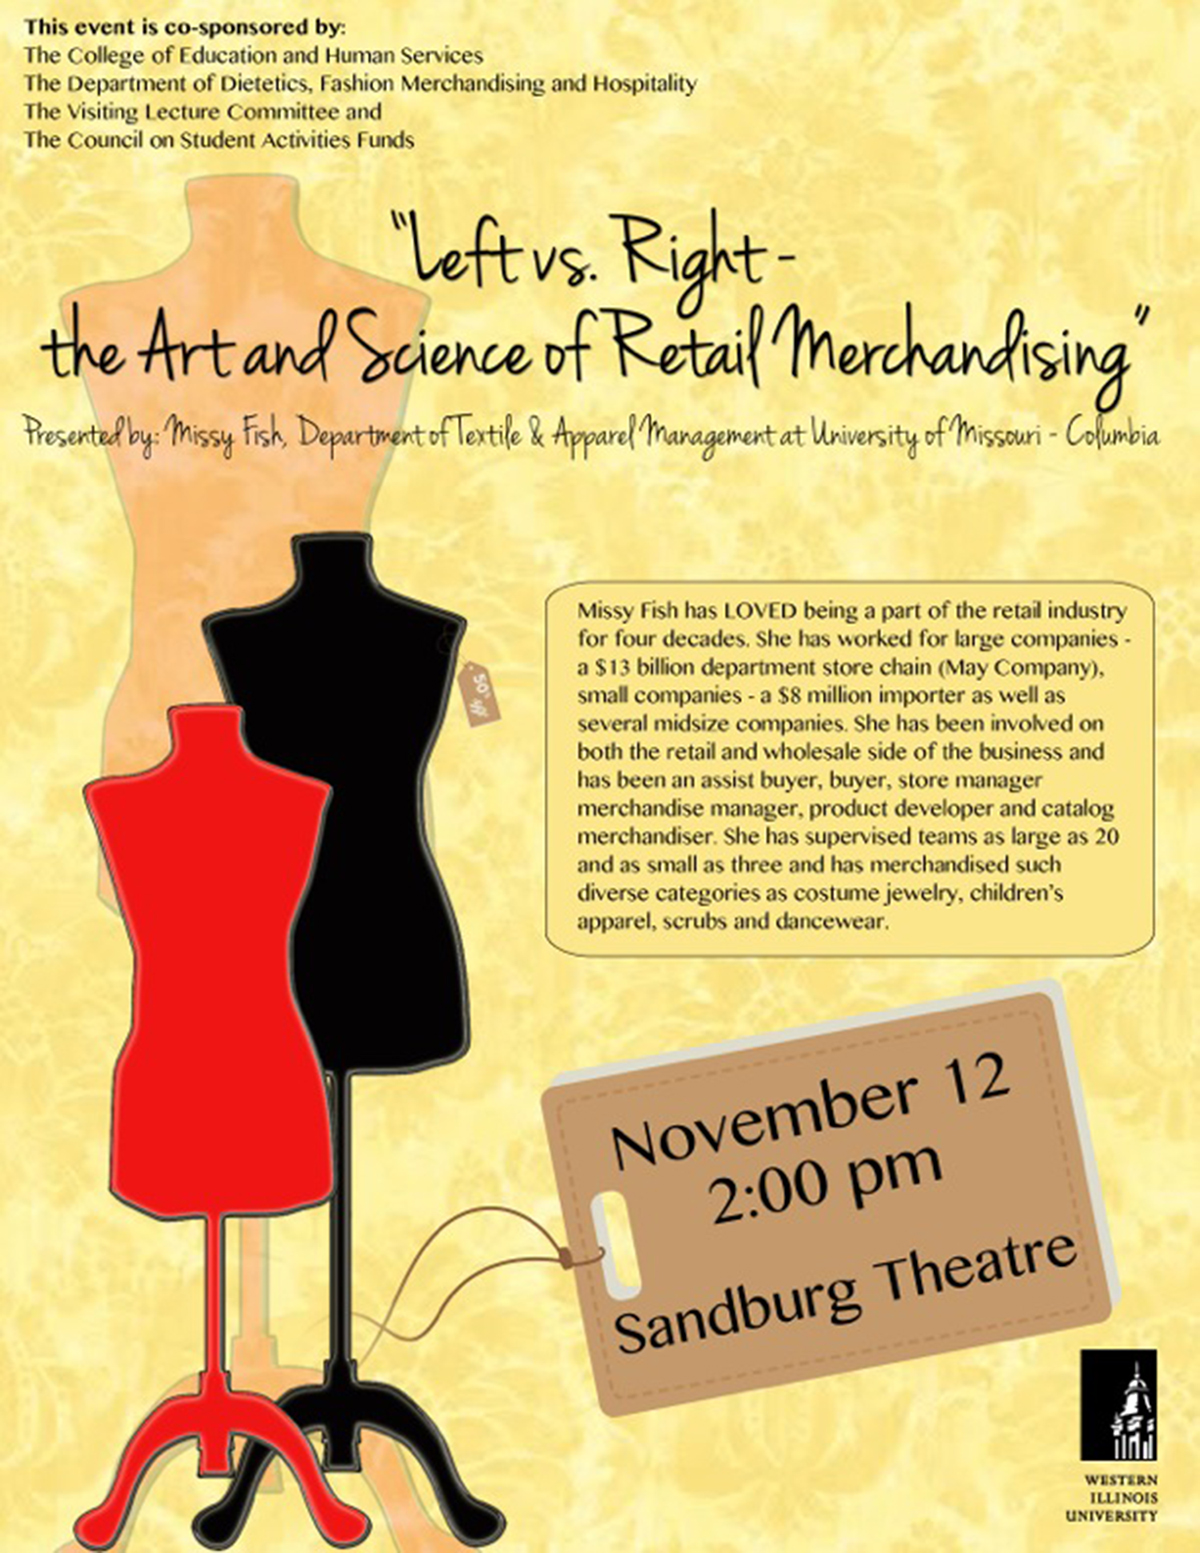 Right The Art And Science Of Retail Merchandising At 2 P M Wednesday Nov 12 In University Union Sandburg Theatre Event Is Open Free To